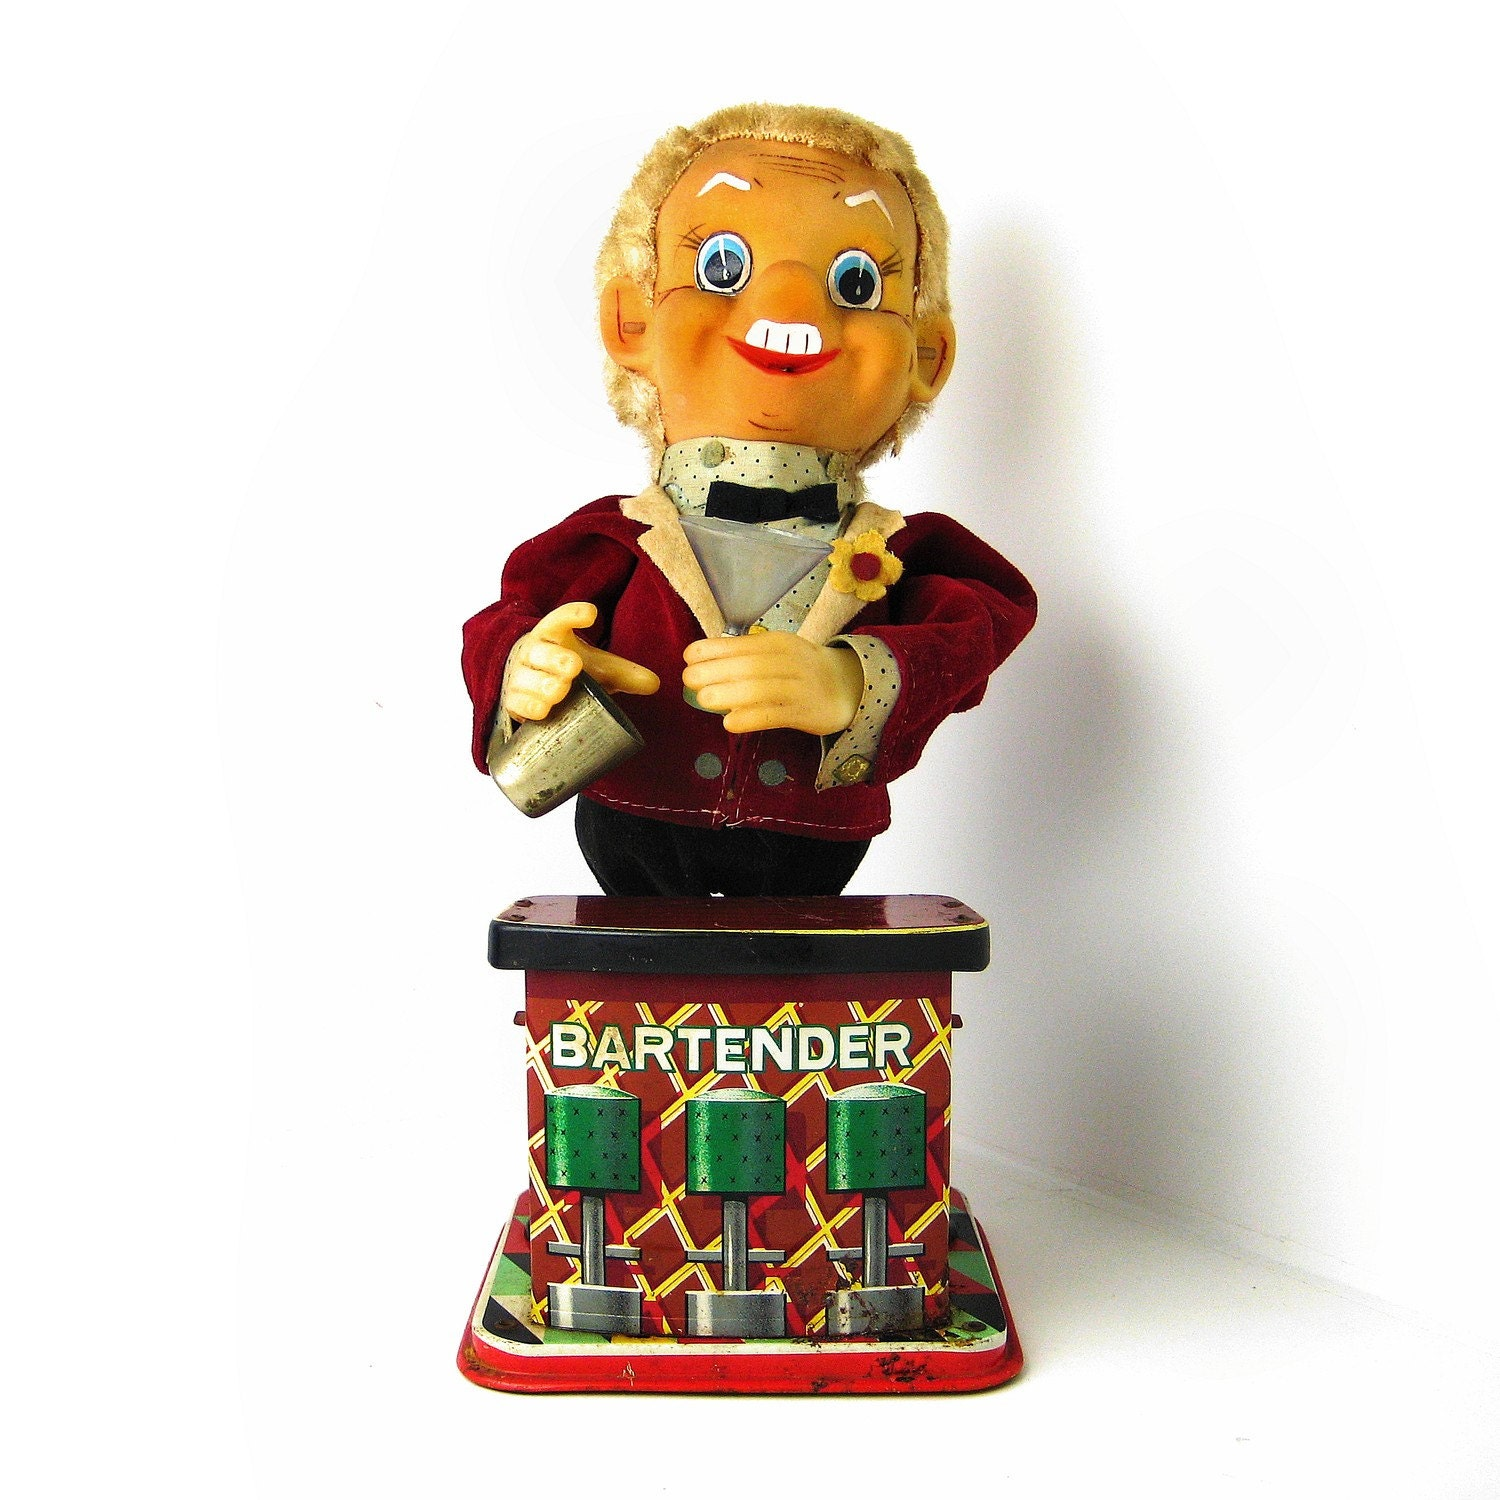 Creepy Japanese Toy : Vintage tin toy disturbing bartender doll creepy white